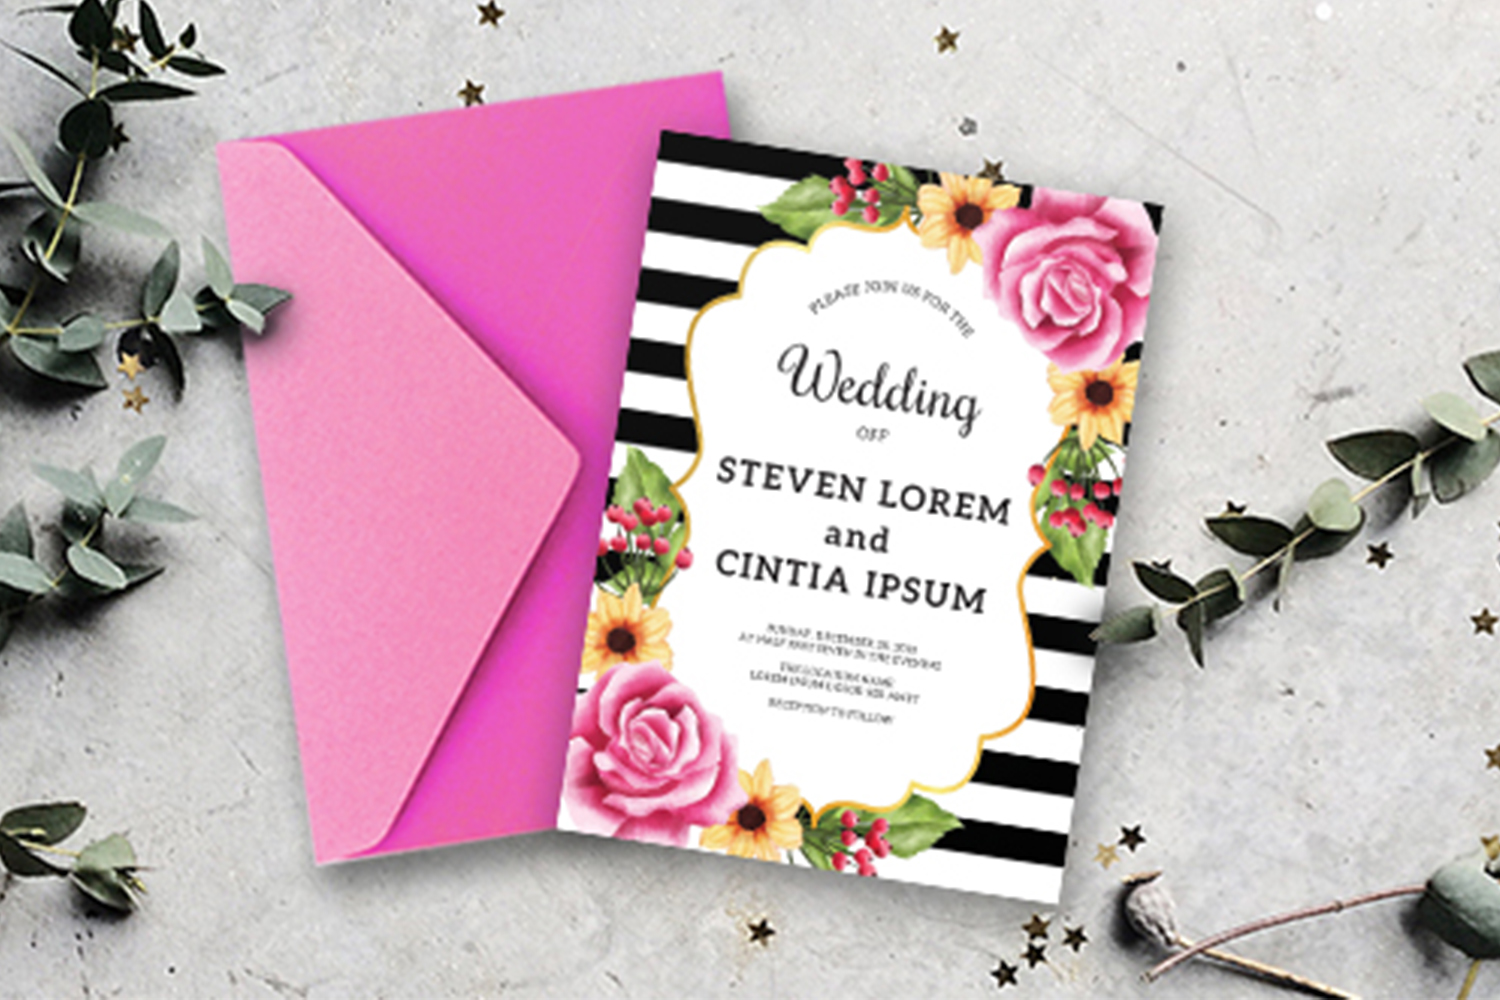 Wedding invitation floral rose Collection example image 2